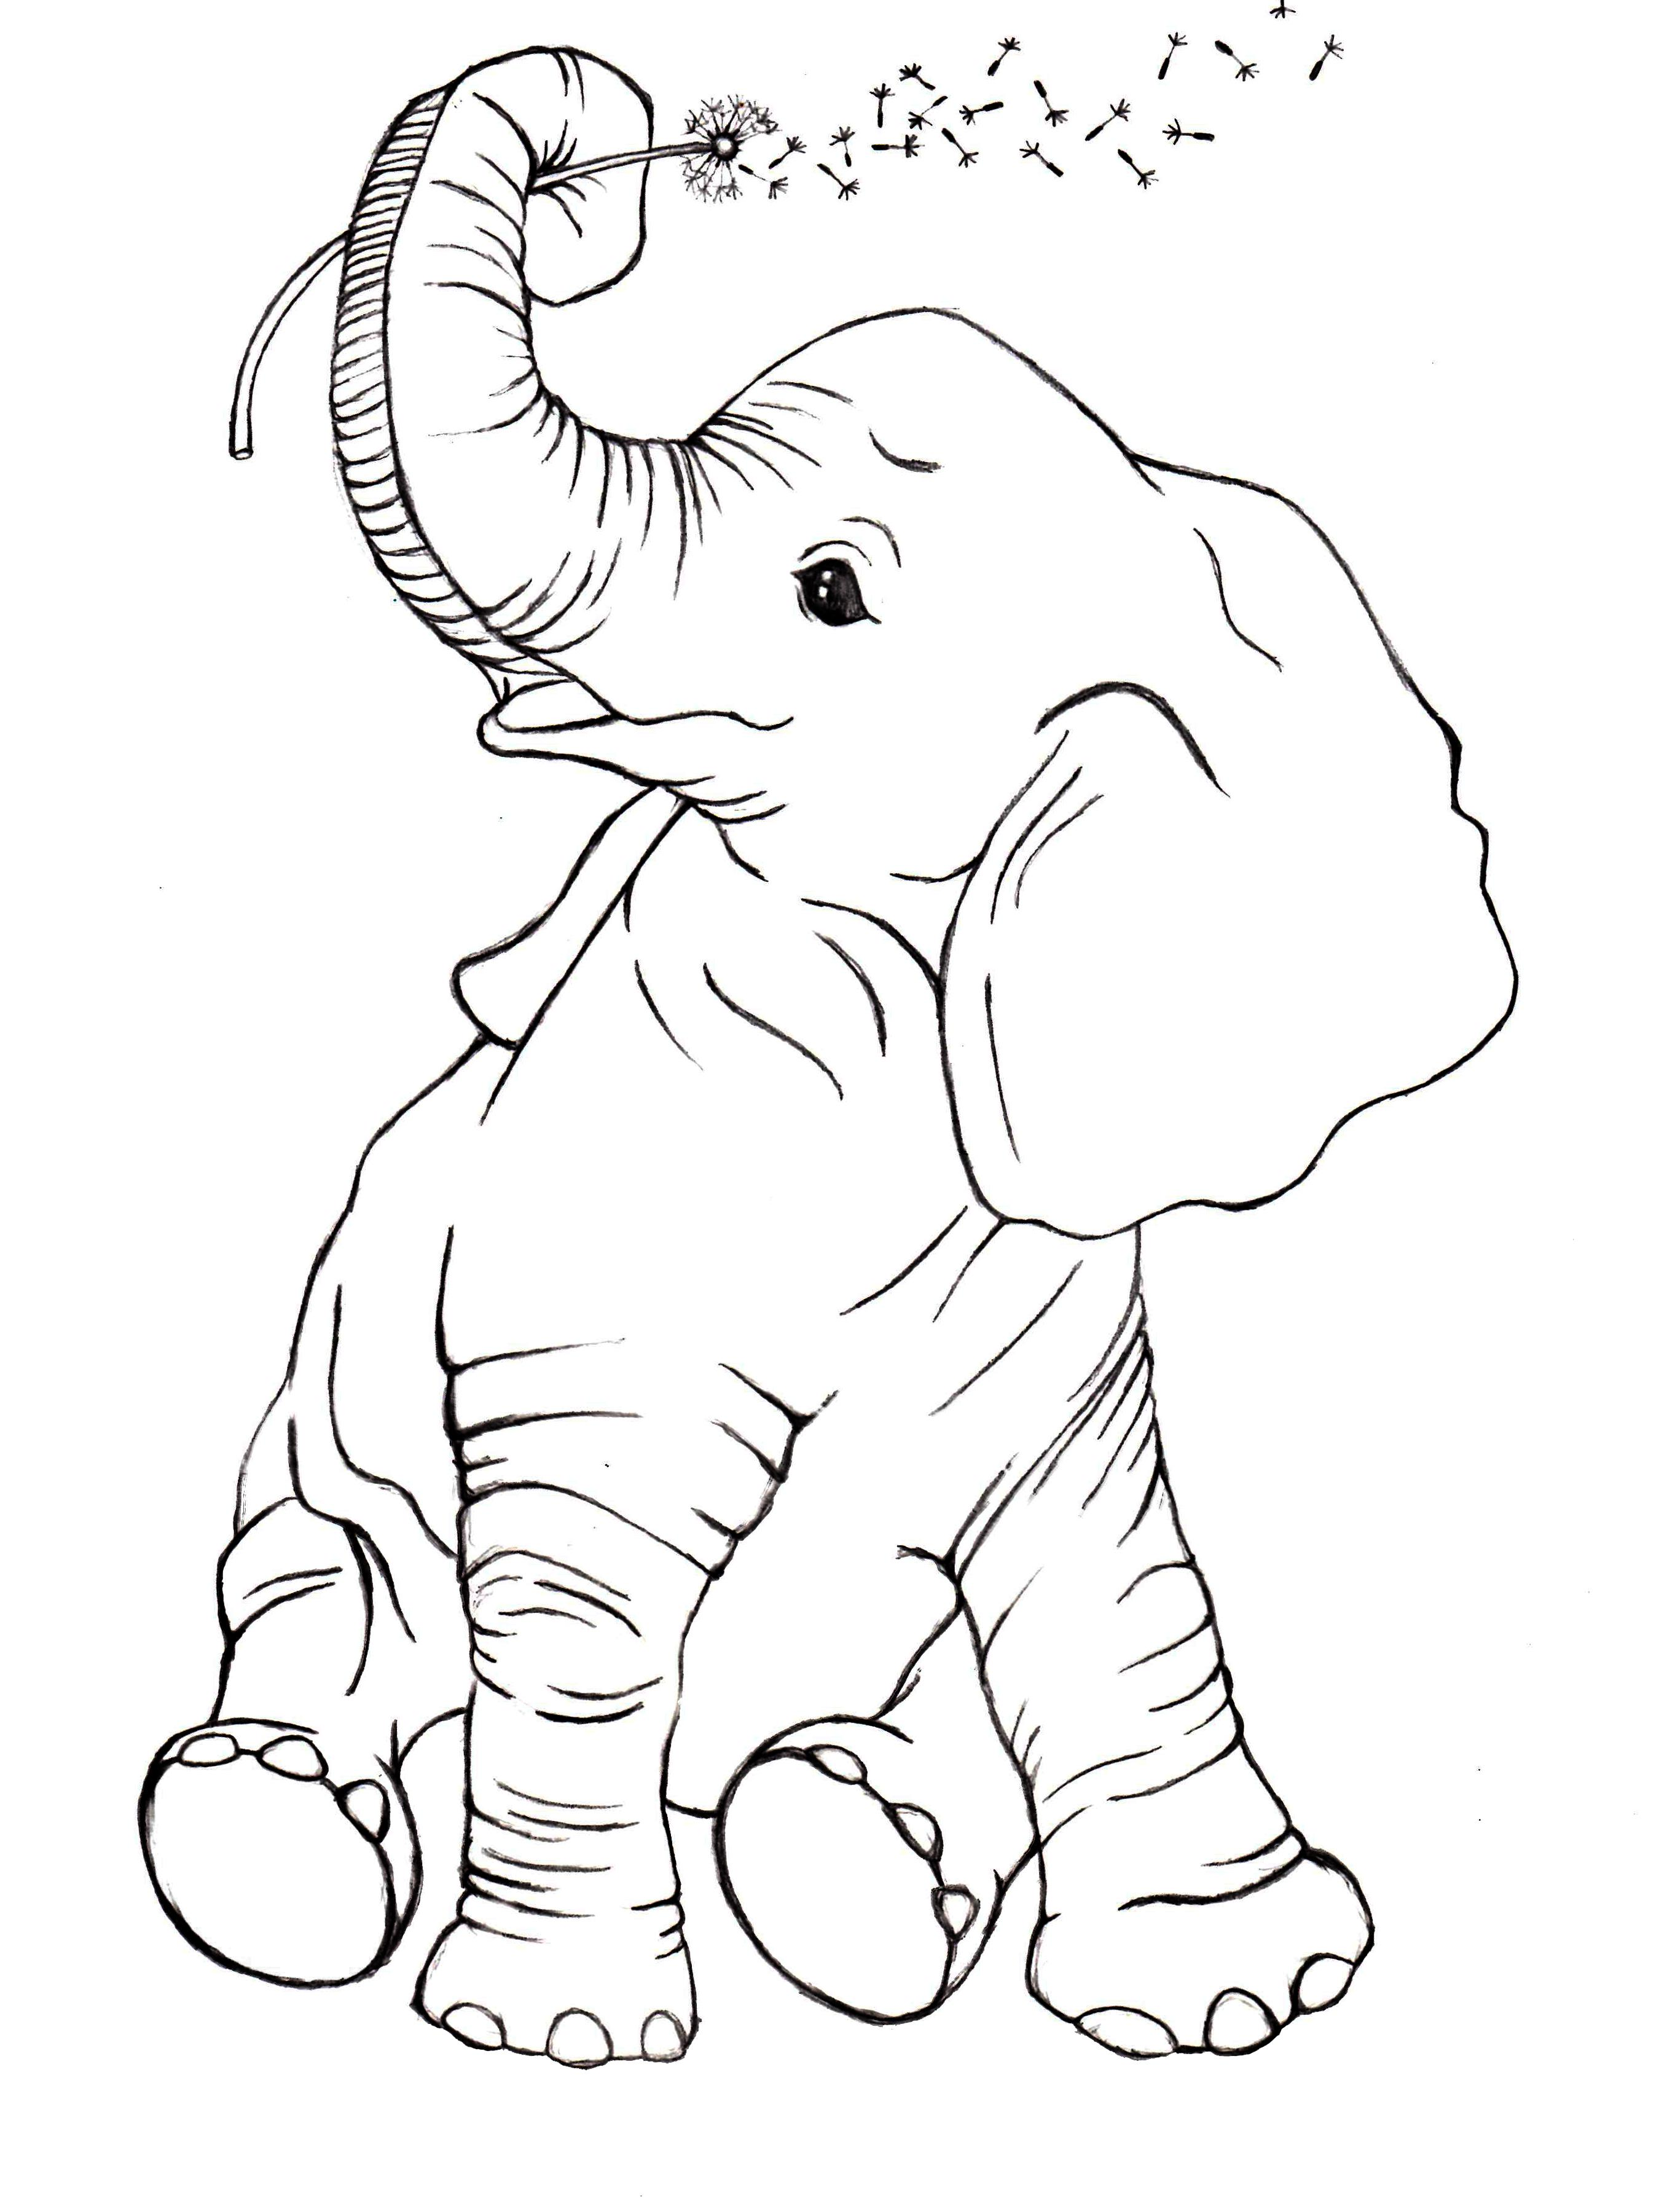 an elephant never forgets skillshare projects